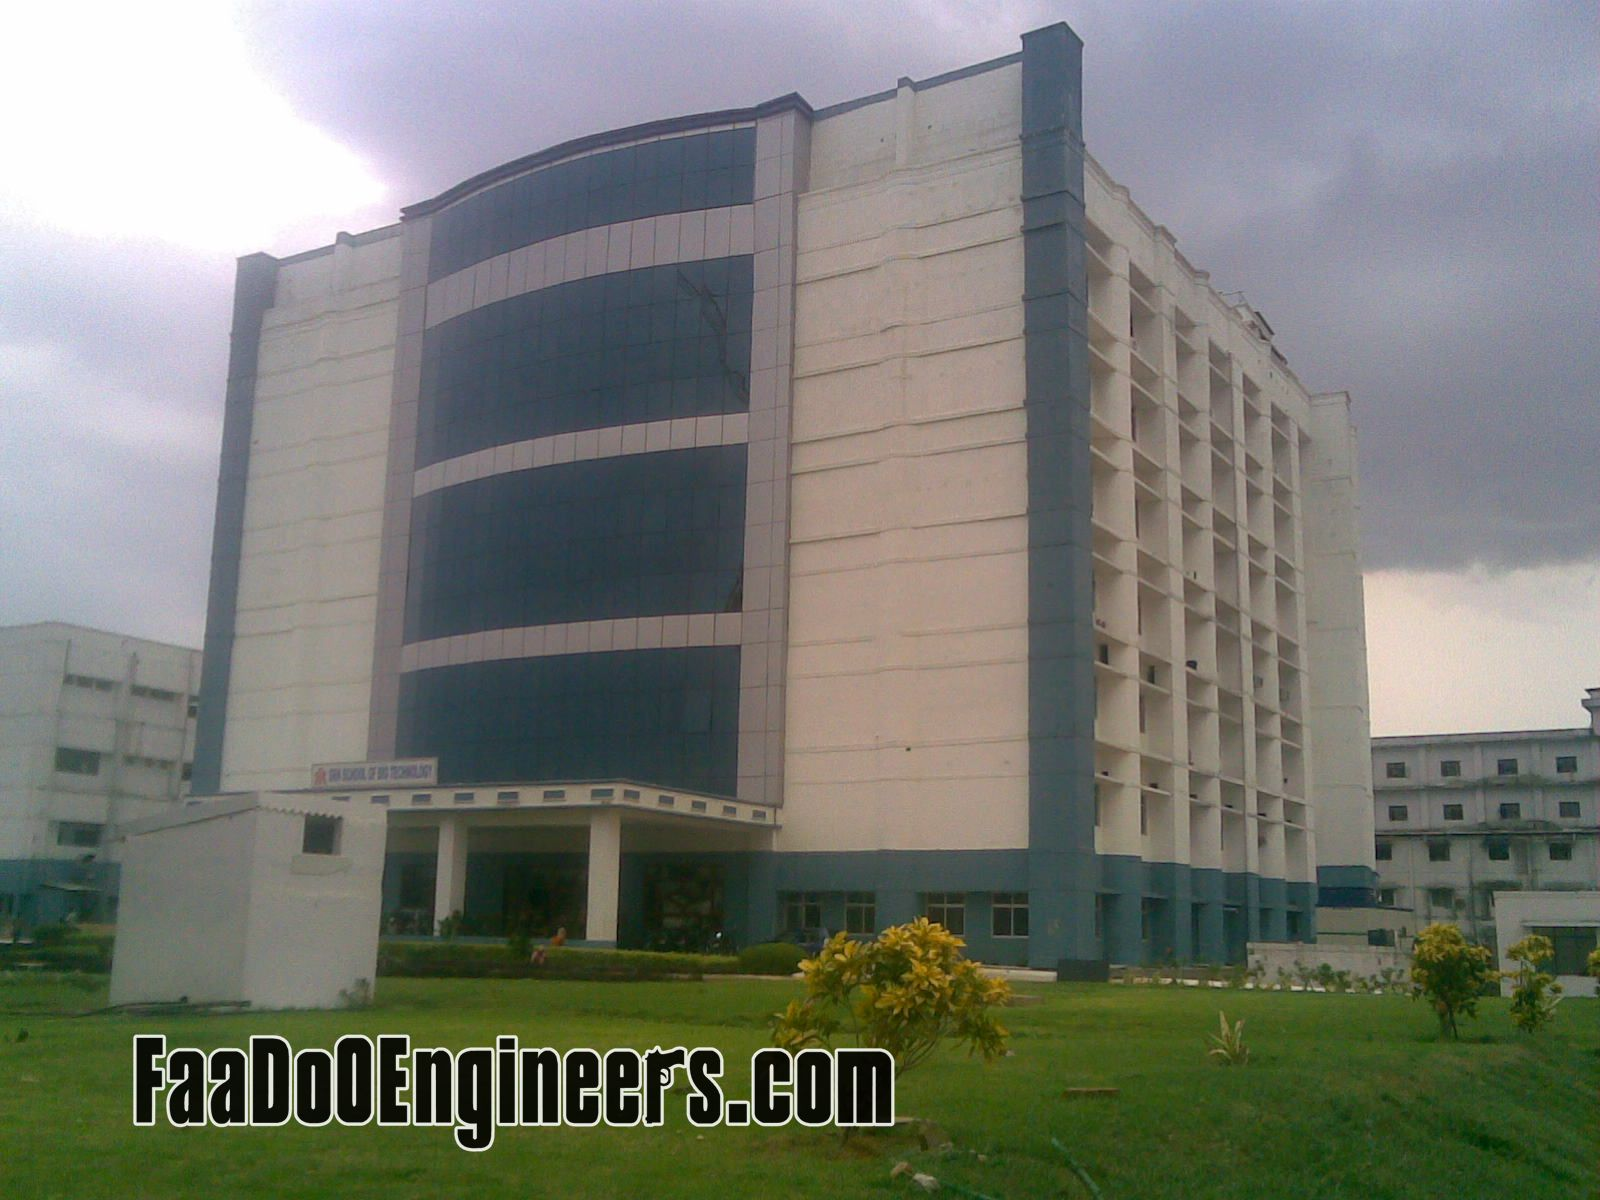 s-r-m-institute-of-science-and-technology-chennai-campus-photos001